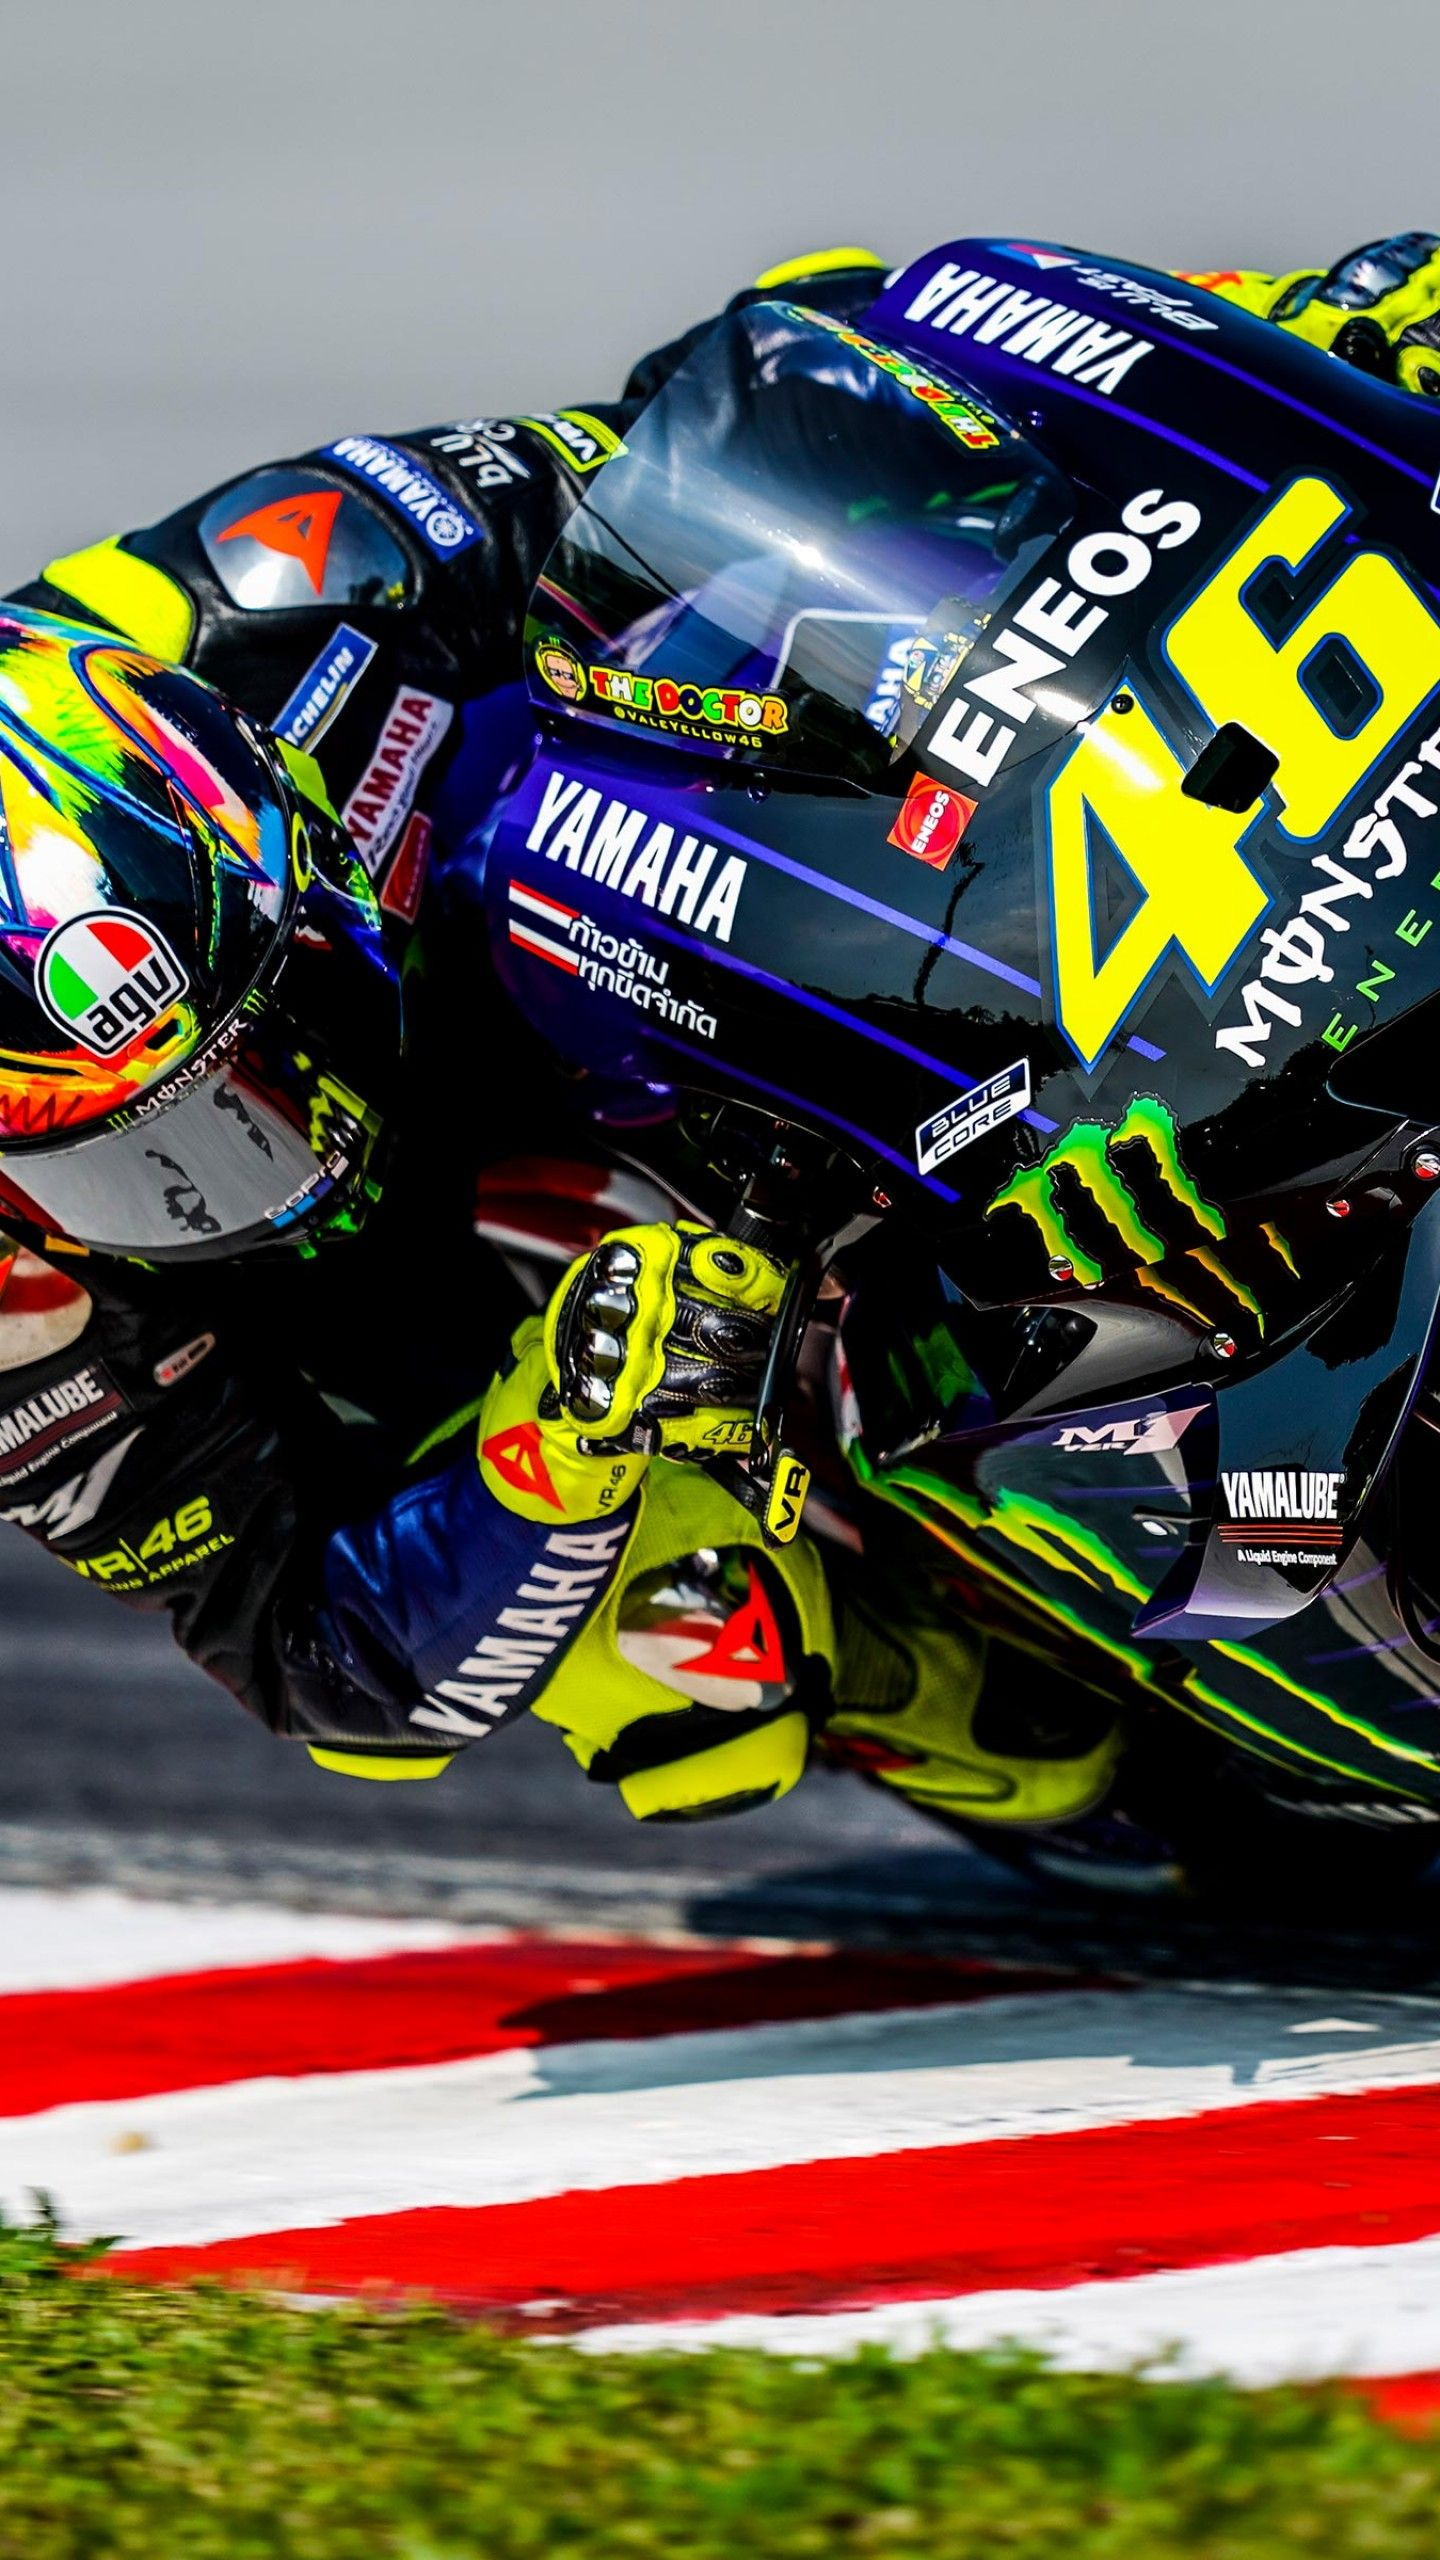 valentino rossi wallpapers top free valentino rossi backgrounds wallpaperaccess valentino rossi wallpapers top free